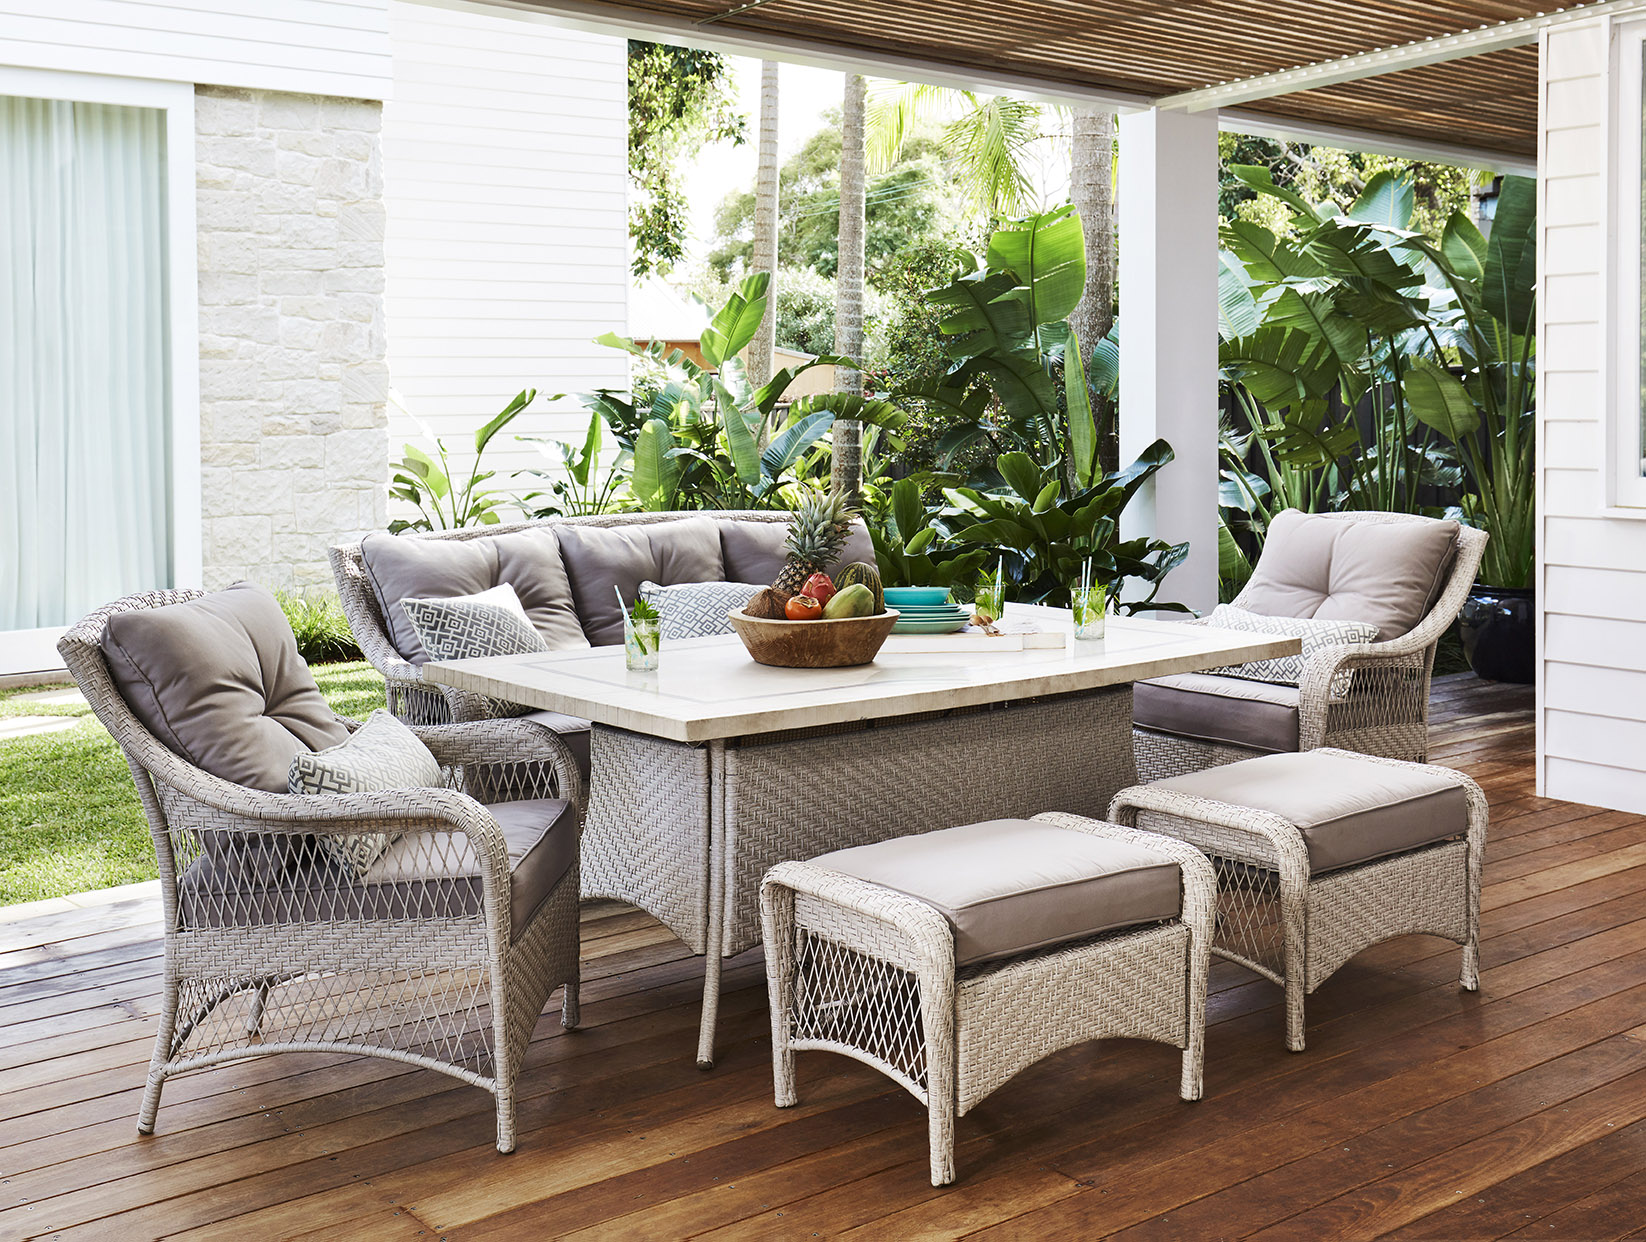 Amazing summer outdoor furniture ideas and inspiration Better